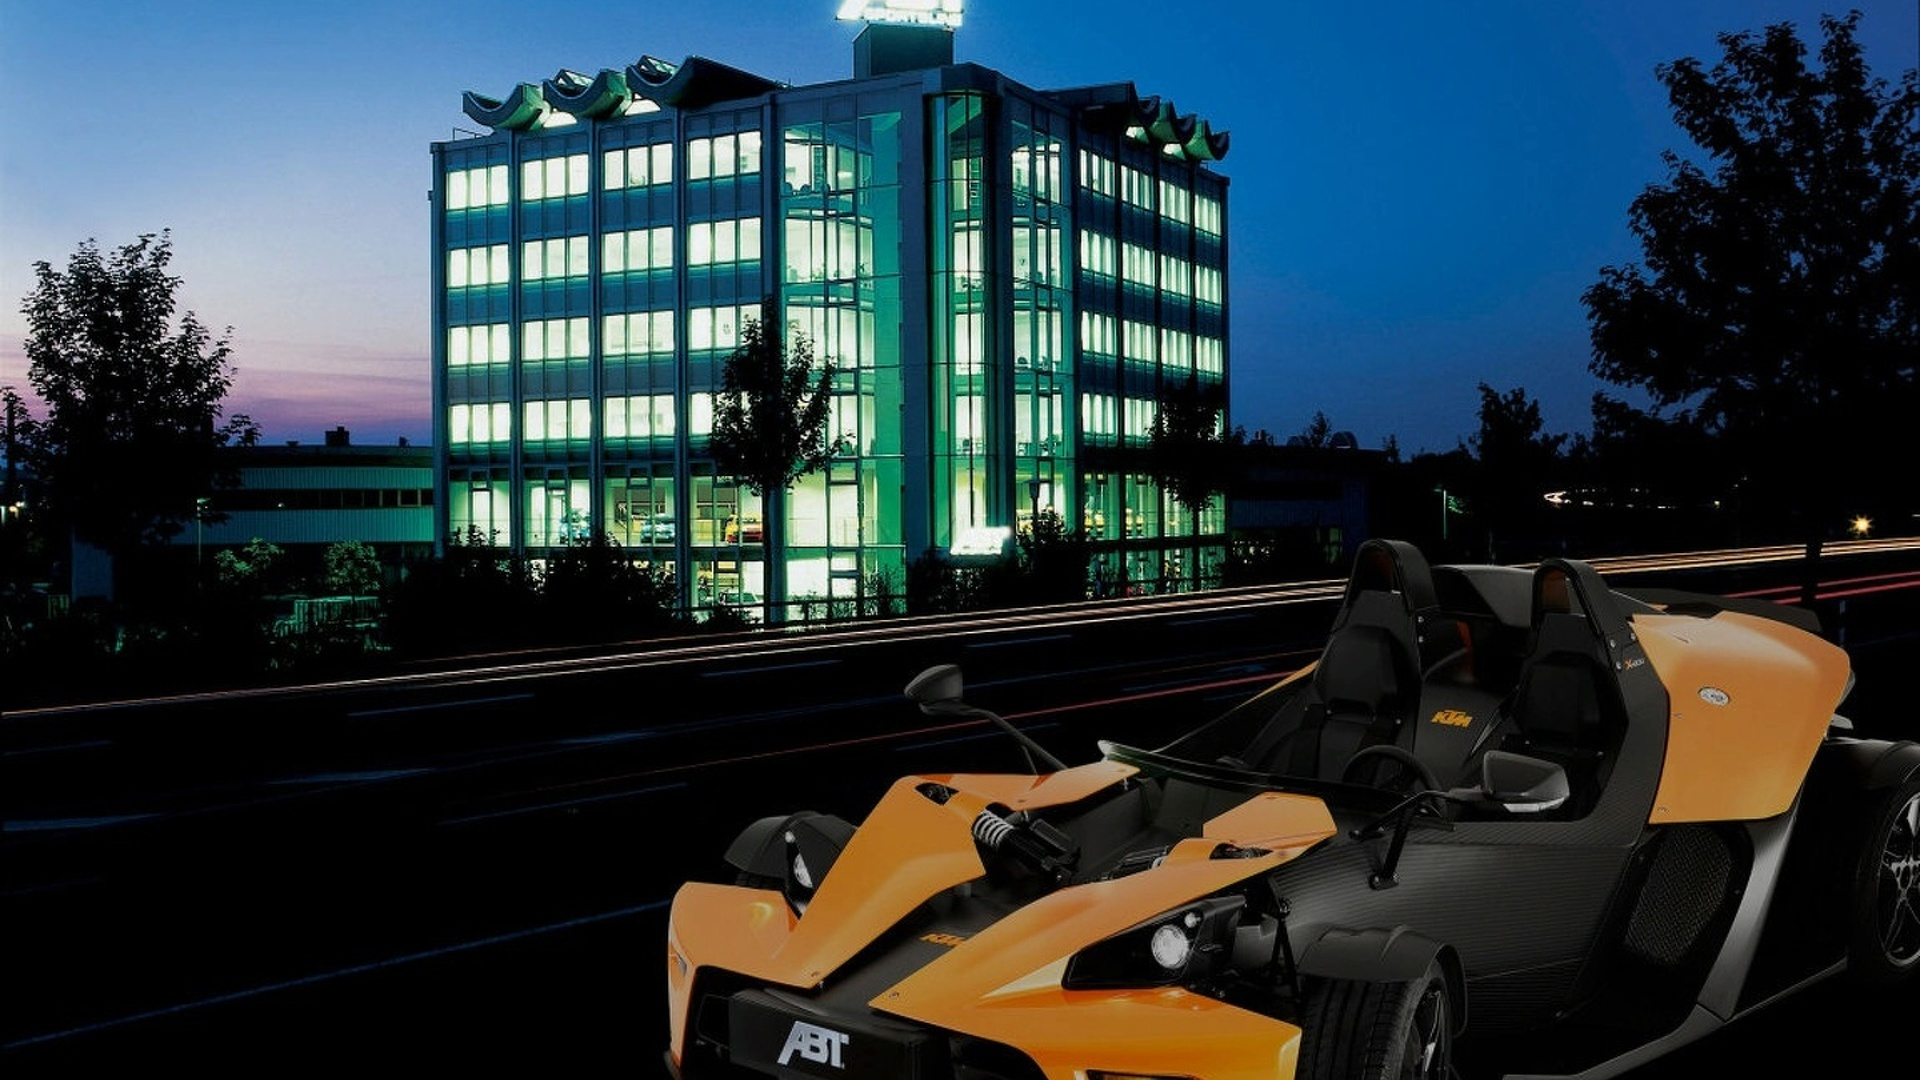 KTM and Abt Partner for X-BOW Sales and Service - Performance upgrades on the way